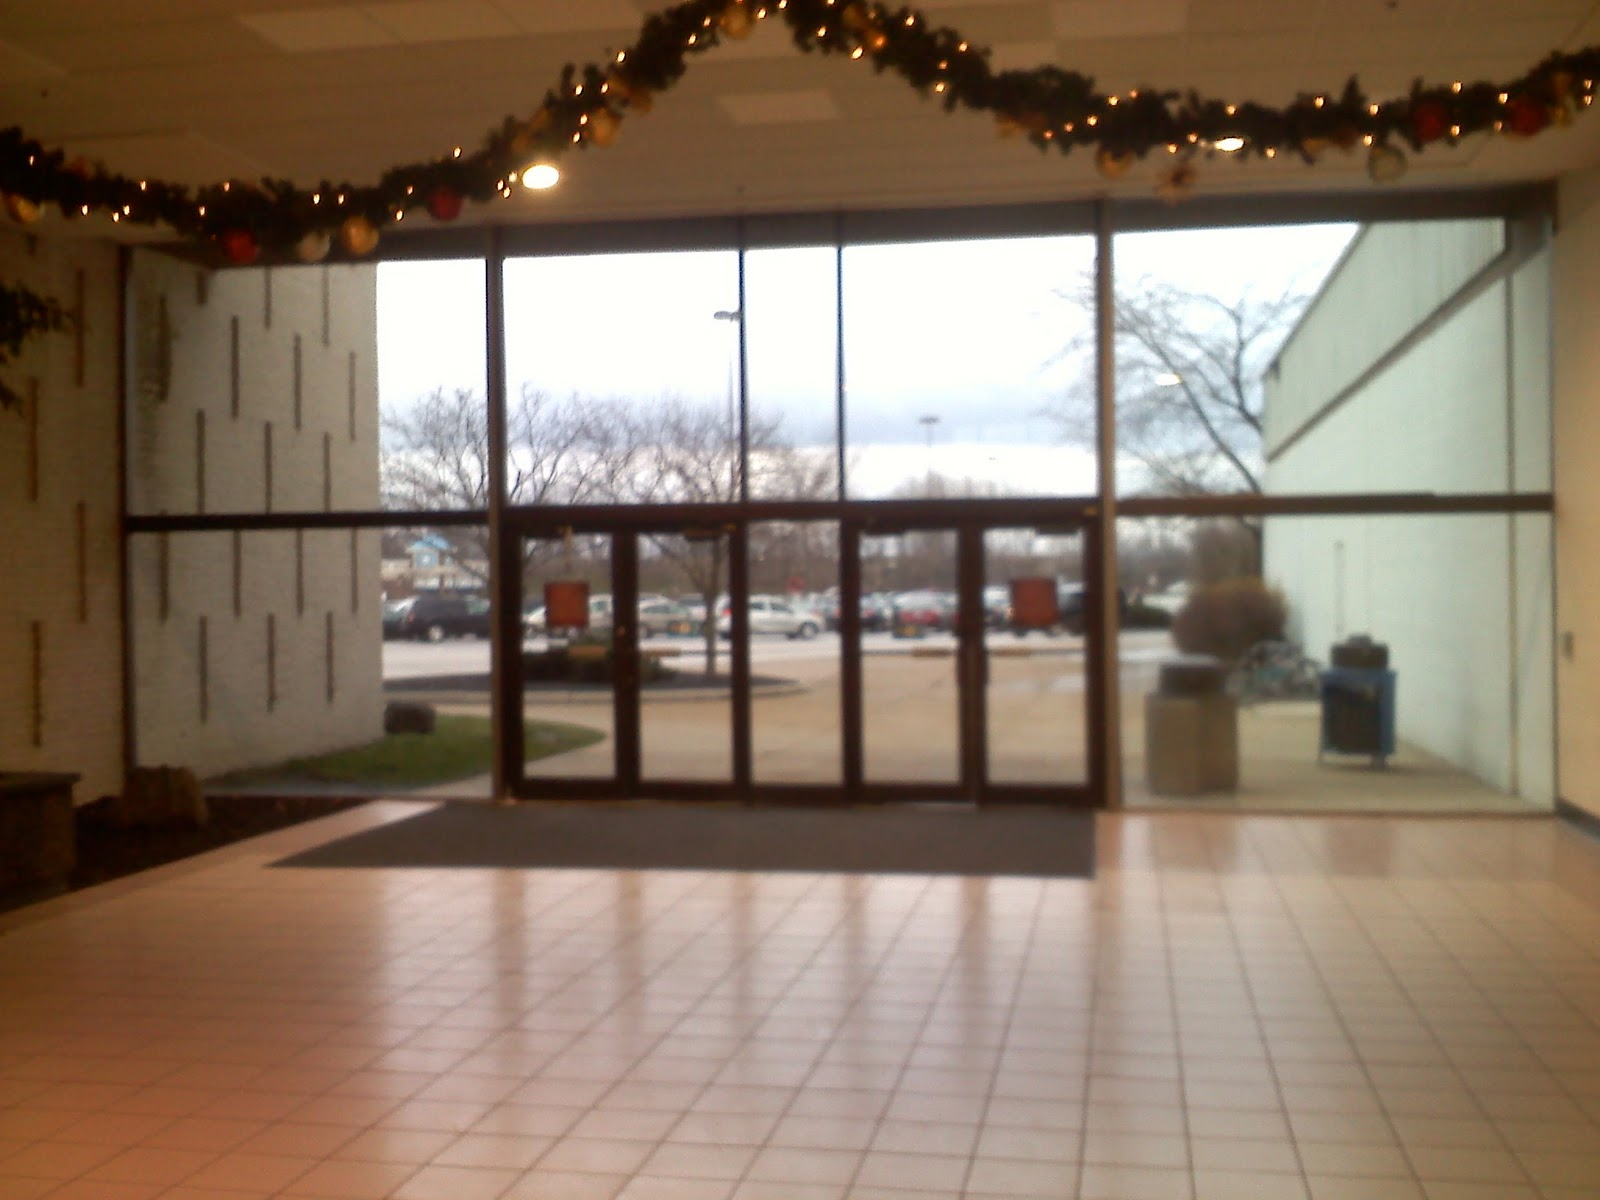 Mall Entrance Doors : Dead and dying retail midway mall or recovering